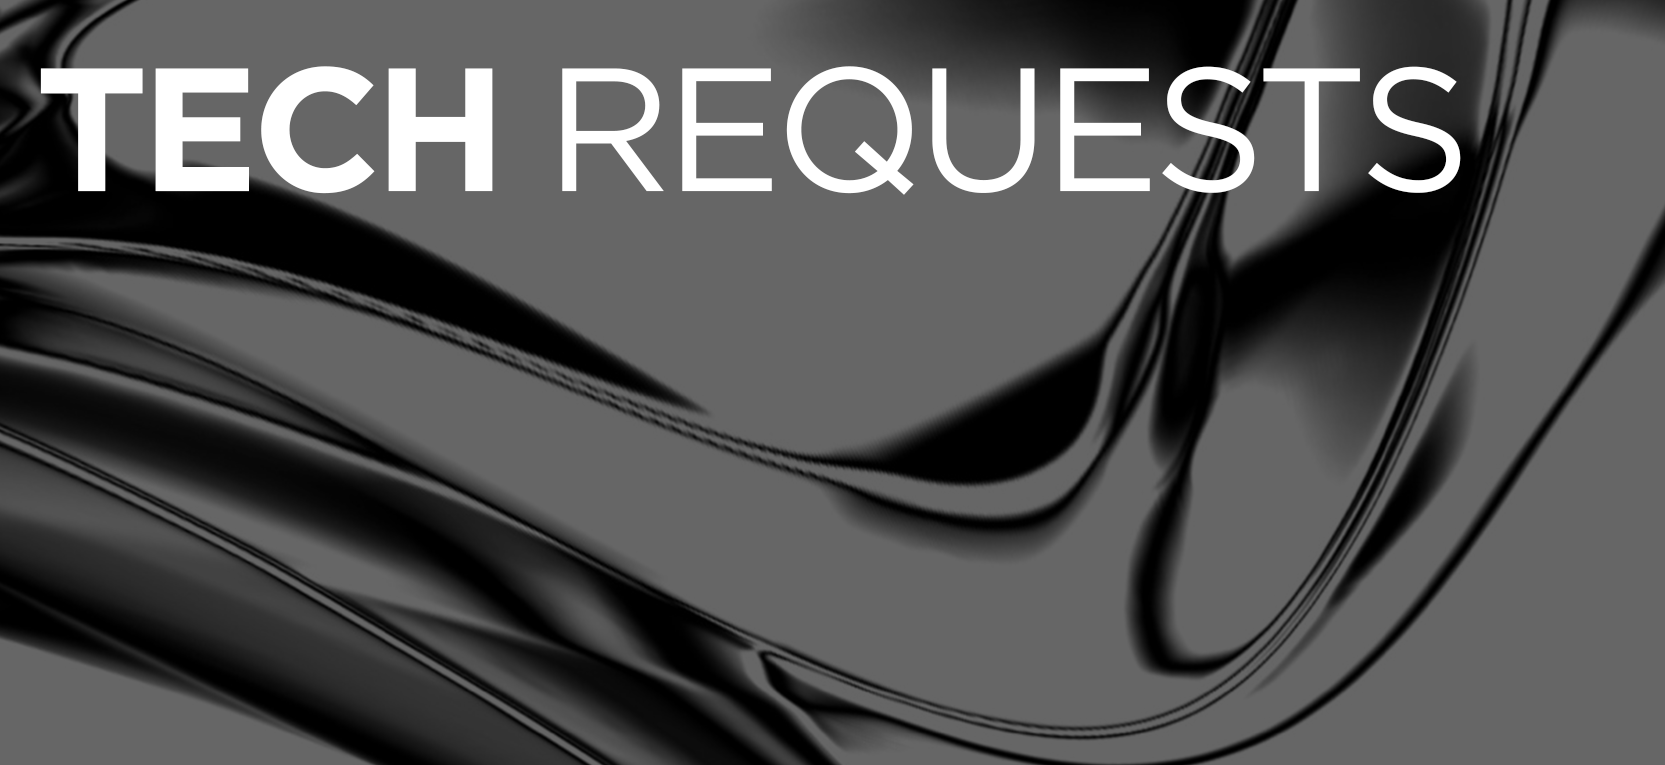 <h1>Tech Requests</h1>